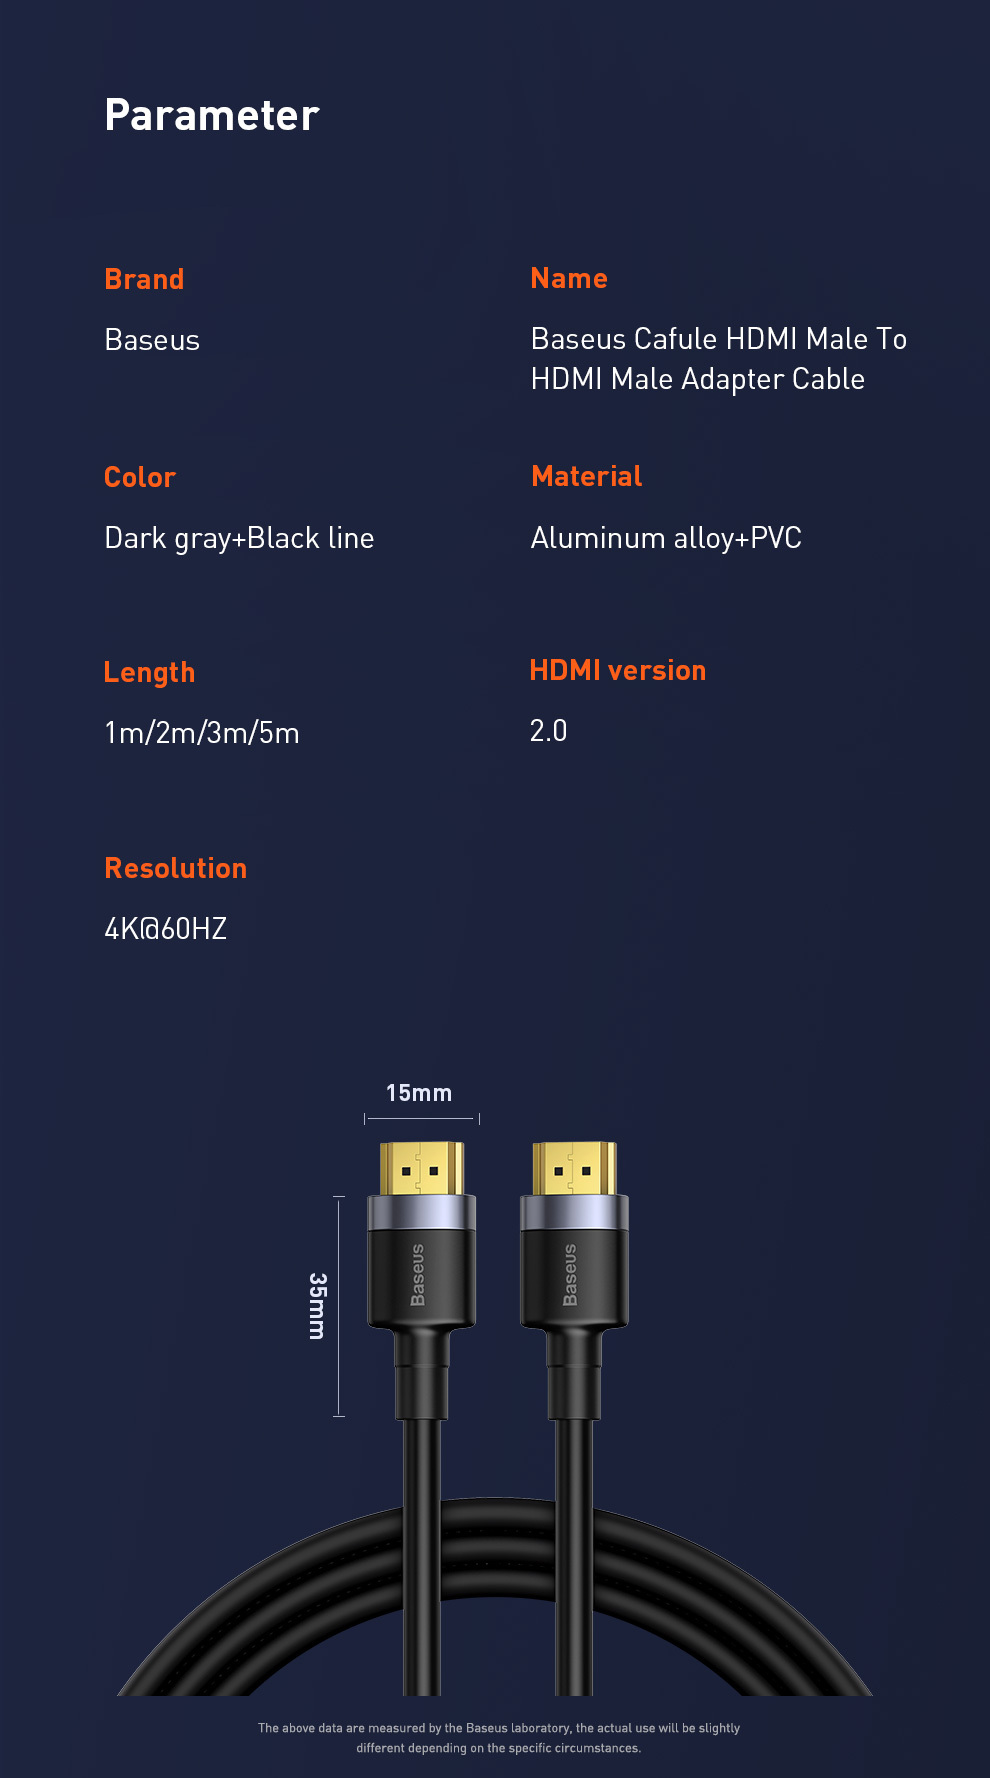 Baseus Hdmi Cable 4k Hdmi To Hdmi Cable Hdmi 2 0 Cable For Ps4 Tv Switch Box Splitter 4k 60hz Ultra Hd Hdmi Cable Video Cabo Hdmi Ca In 2020 Hdmi Hdmi Cables Splitters